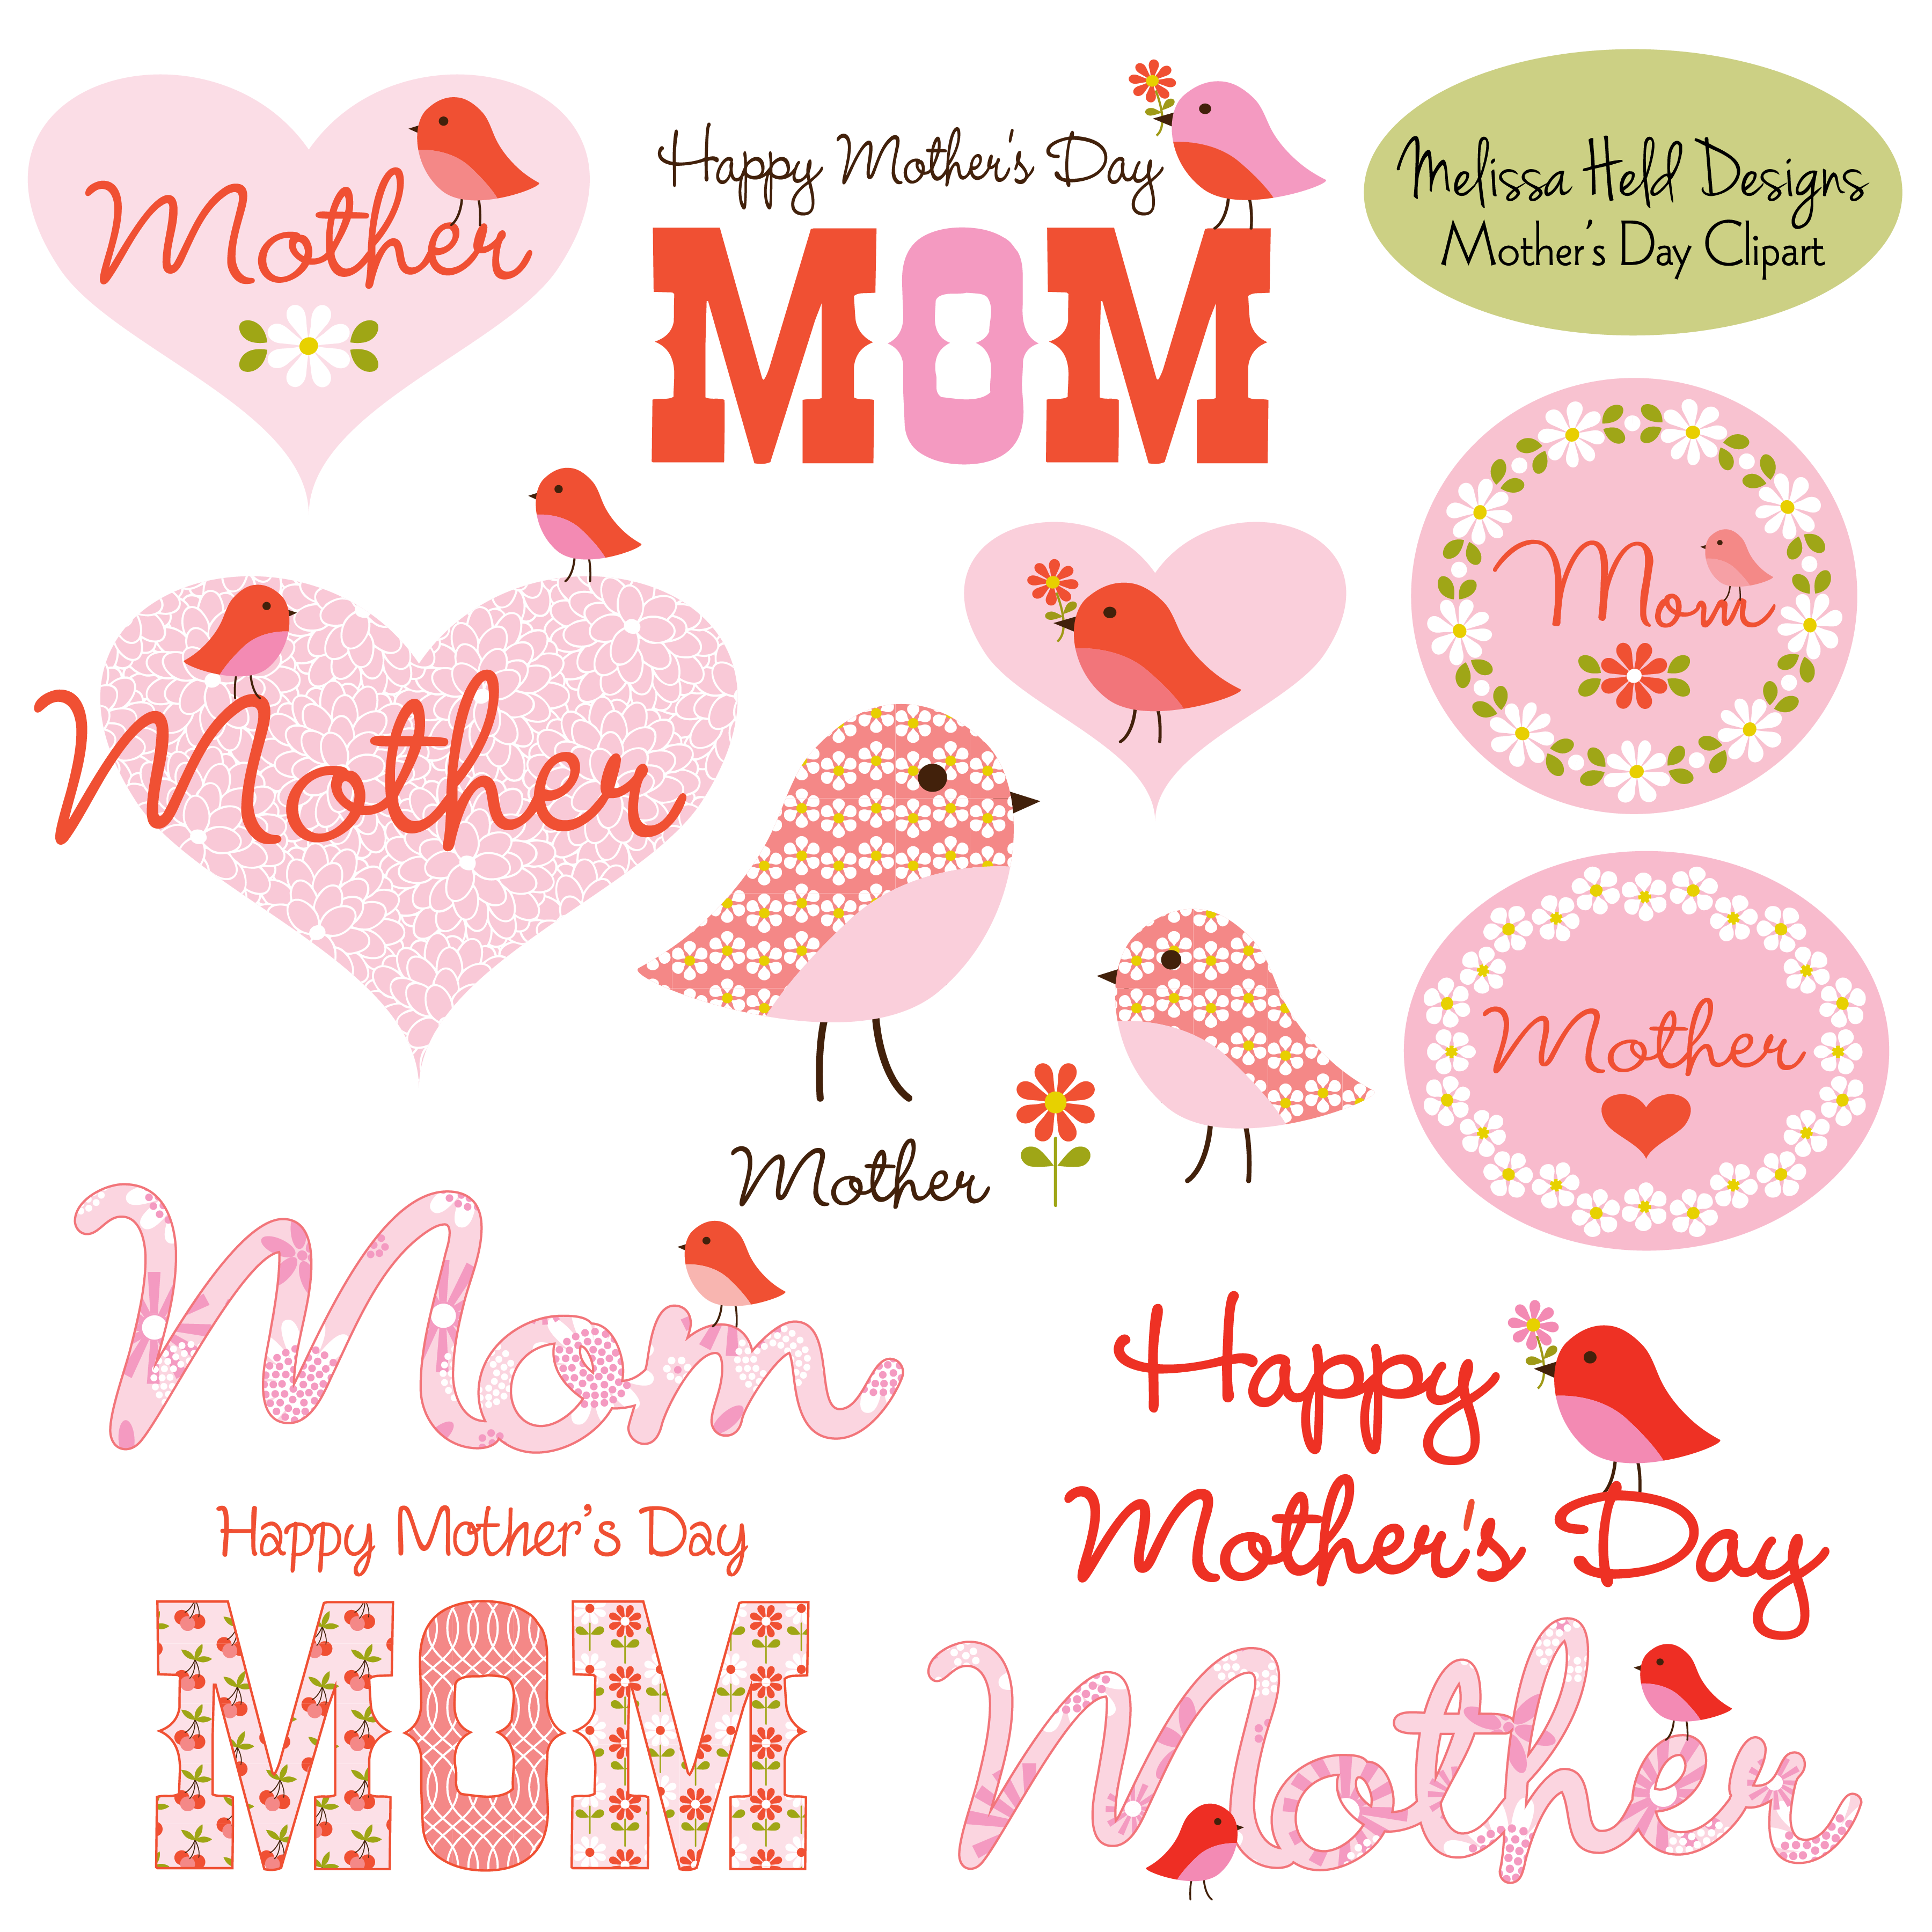 hight resolution of happy mother day quotes happy mothers day images mother day gifts mothers day